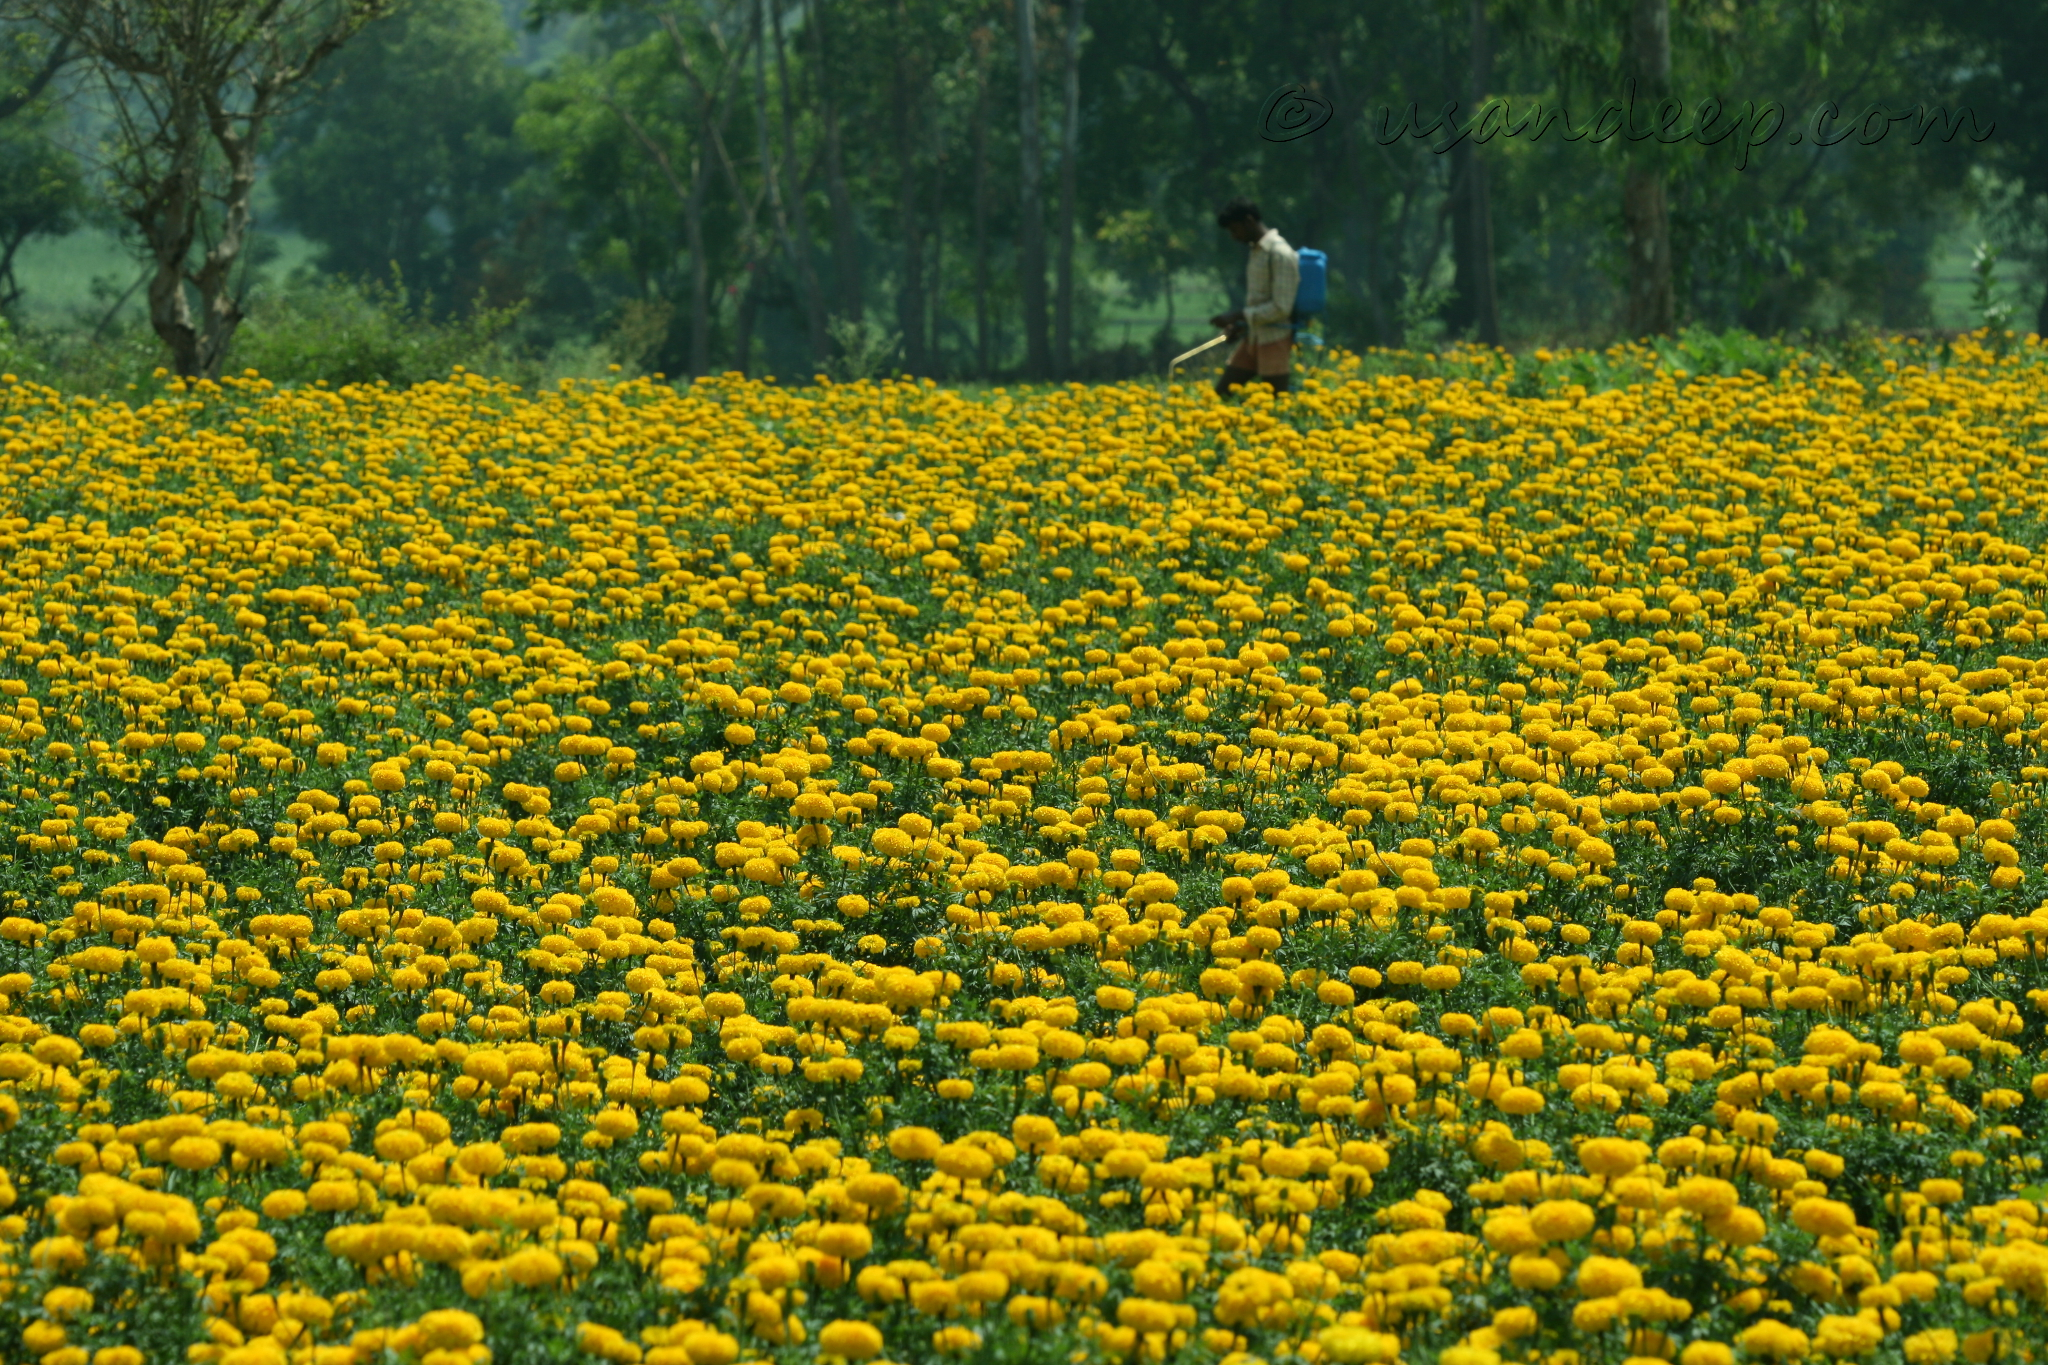 Yellow Marigold fields